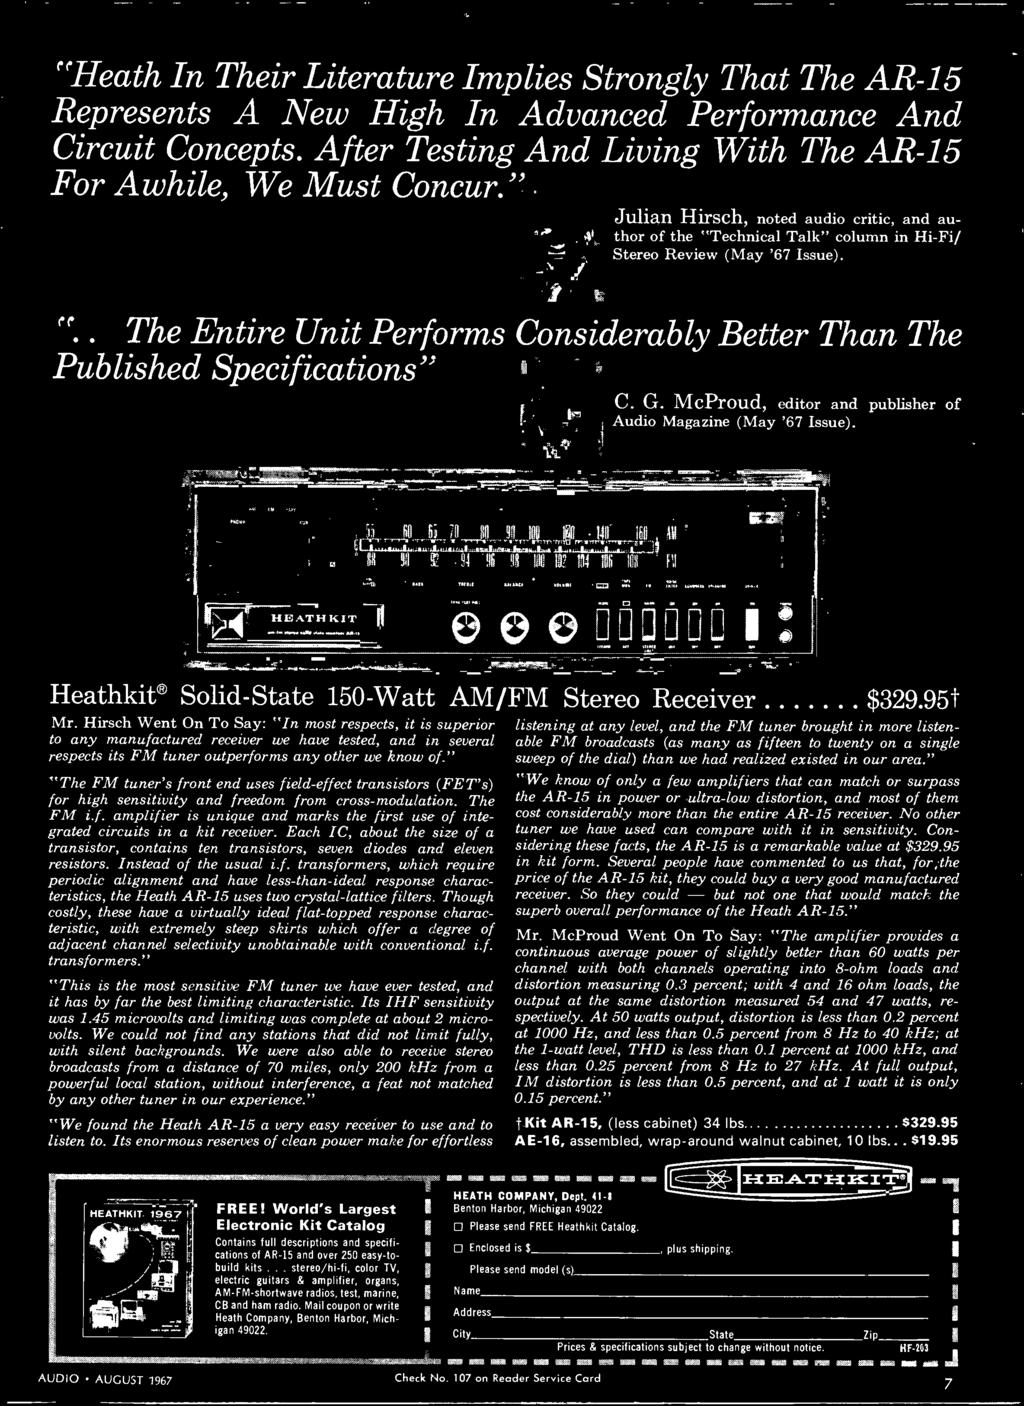 Stereo Hi Fi Preview Issue Pdf Am Fm Radio Kit And Training Course 1 Integrated Circuit 9 Hirsch Went On To Say In Most Respects It Is Superior Any